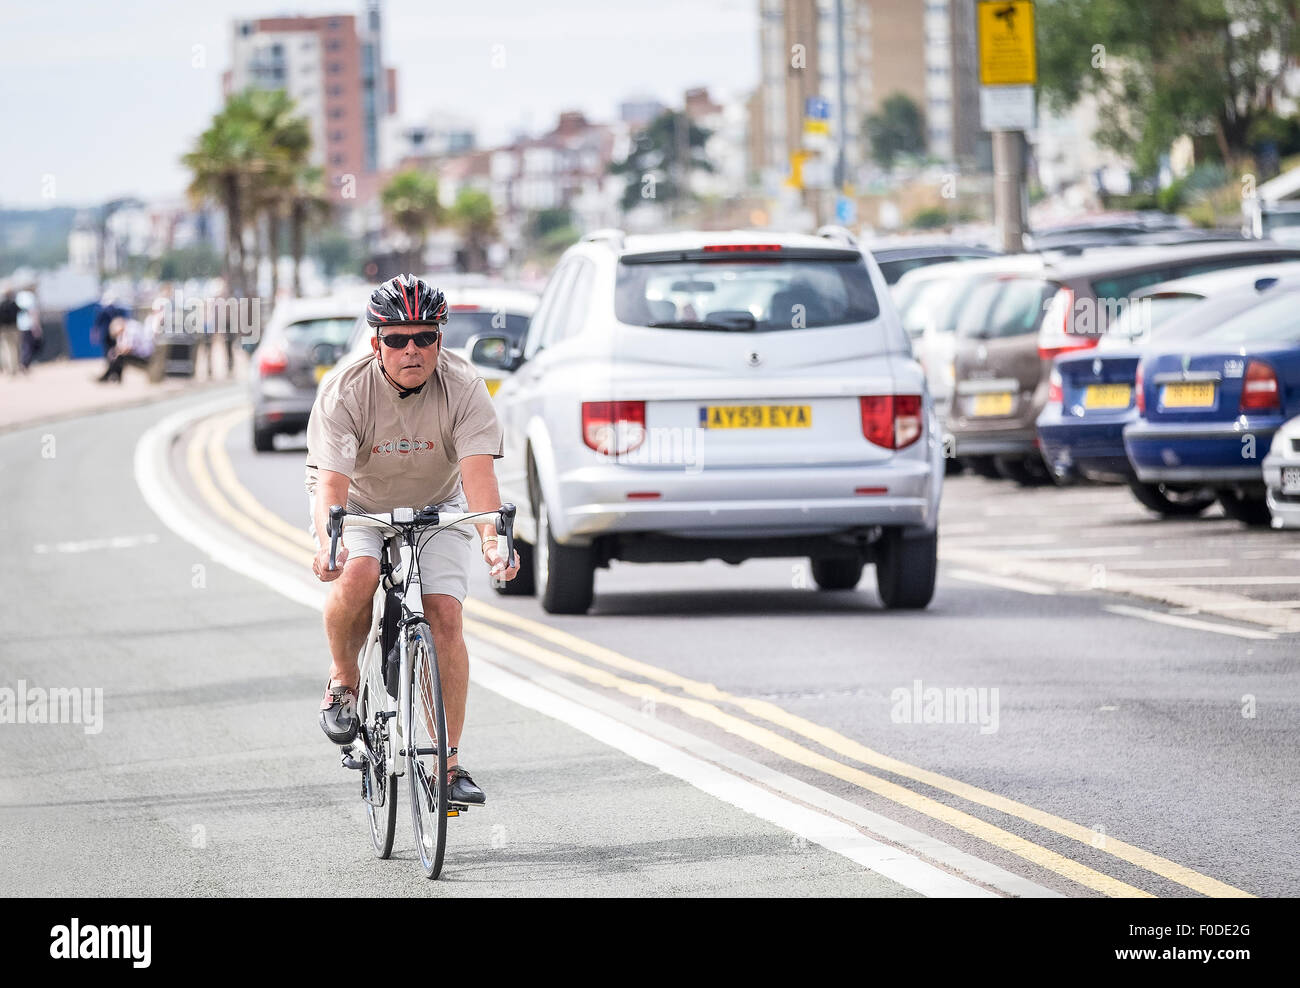 A cyclist using the cycle lane on Southend seafront in Essex. - Stock Image